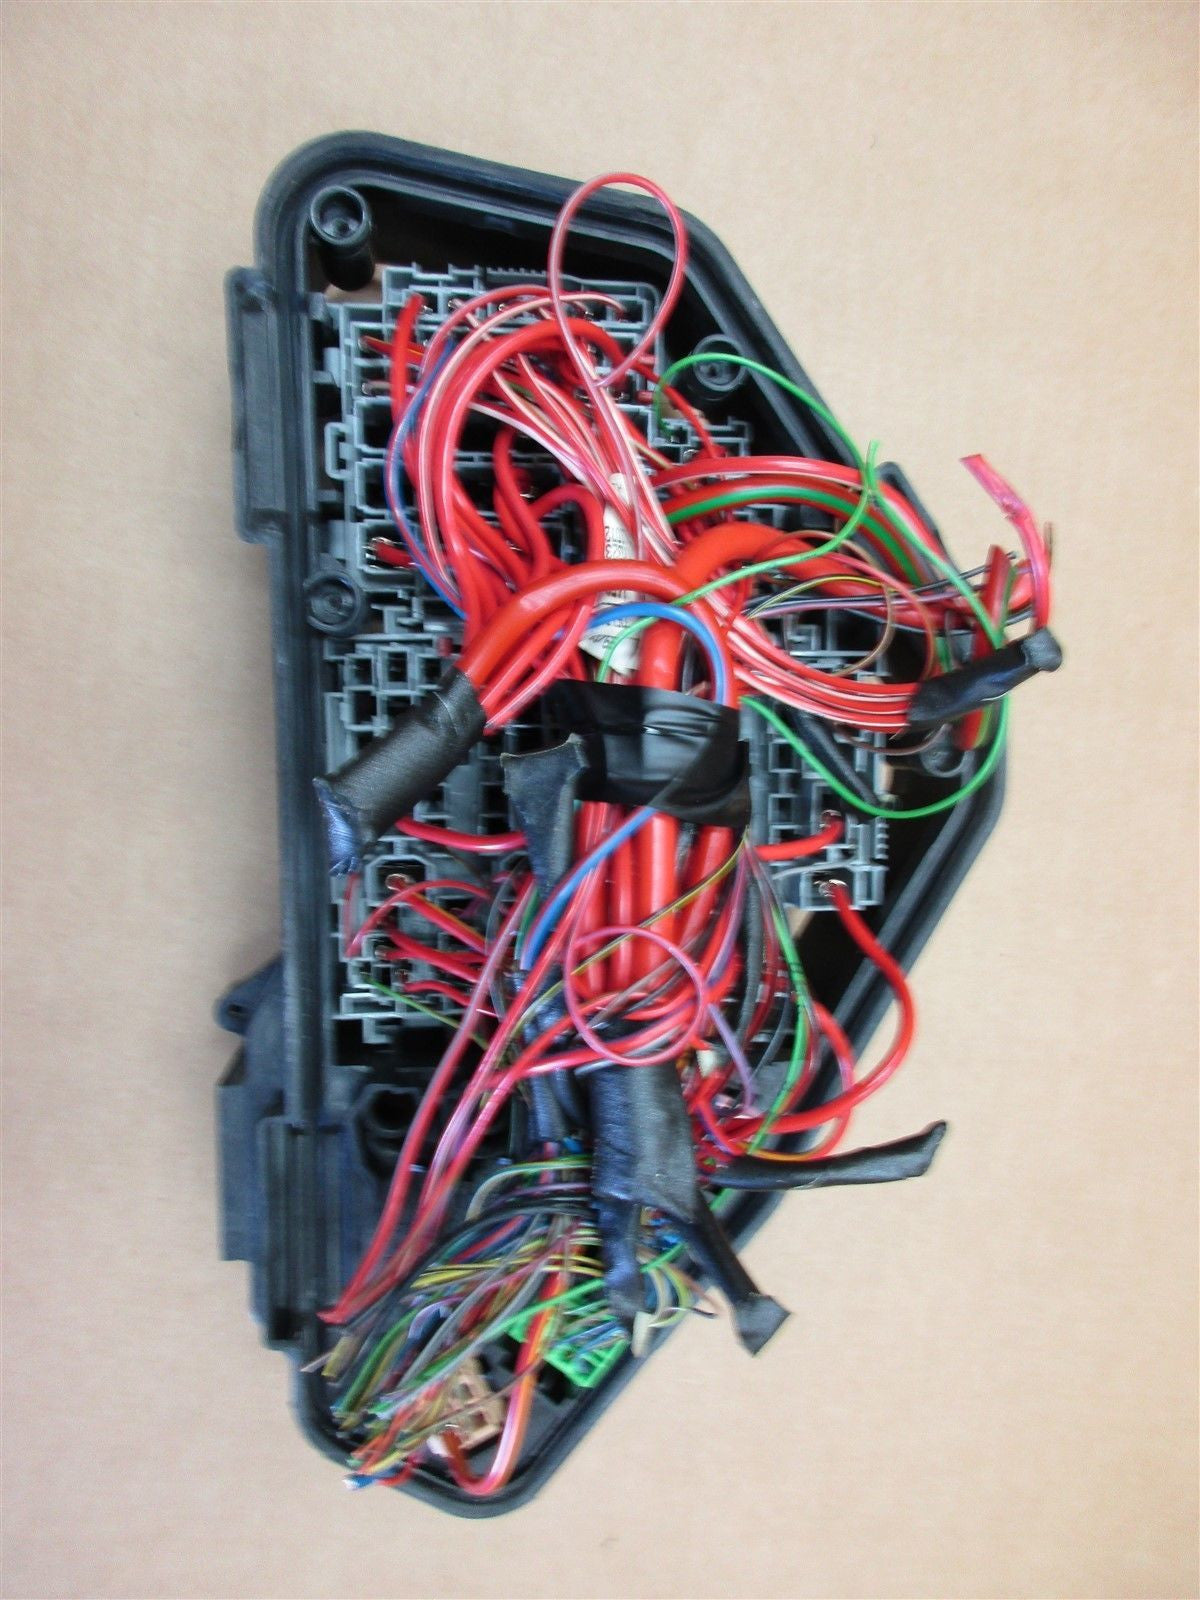 57_ed5eed81 566a 409b a3e2 76083b96c6fe?v=1485406157 04 cayenne turbo awd porsche 955 fuse box relay 7l0941828 04 cayenne fuse box at gsmportal.co